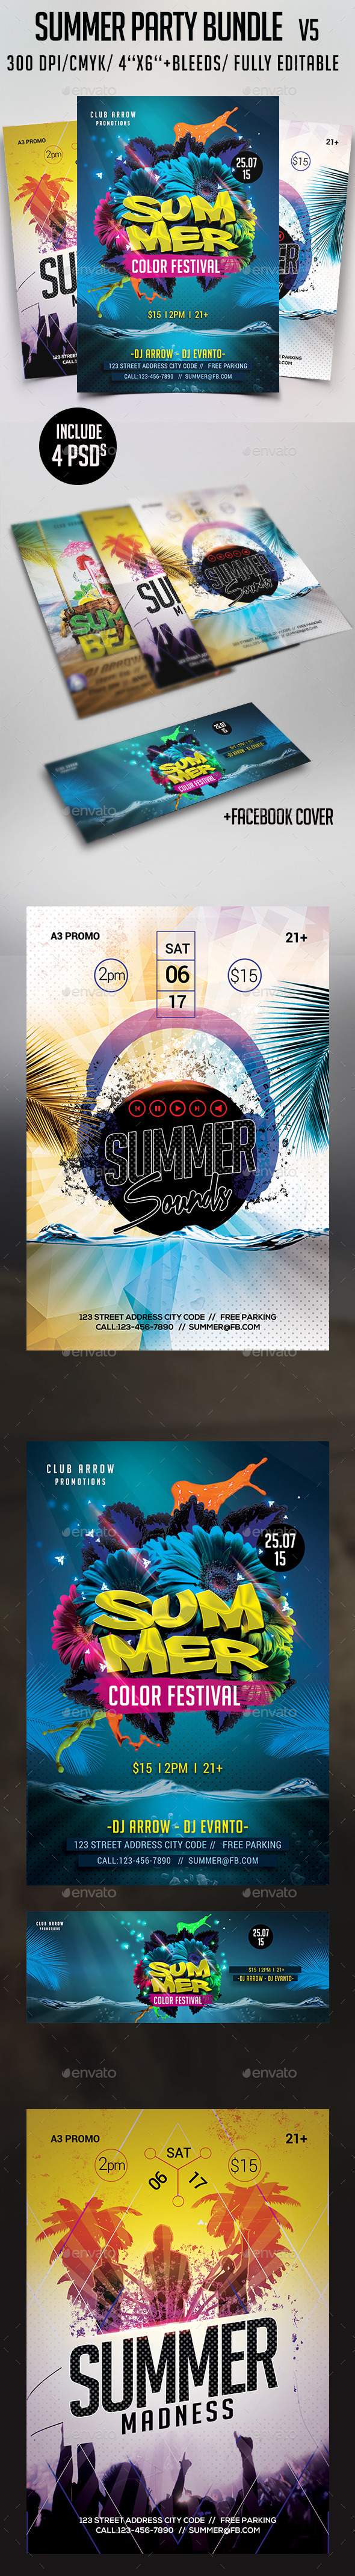 Summer Party Flyer Bundle V5 - Clubs & Parties Events